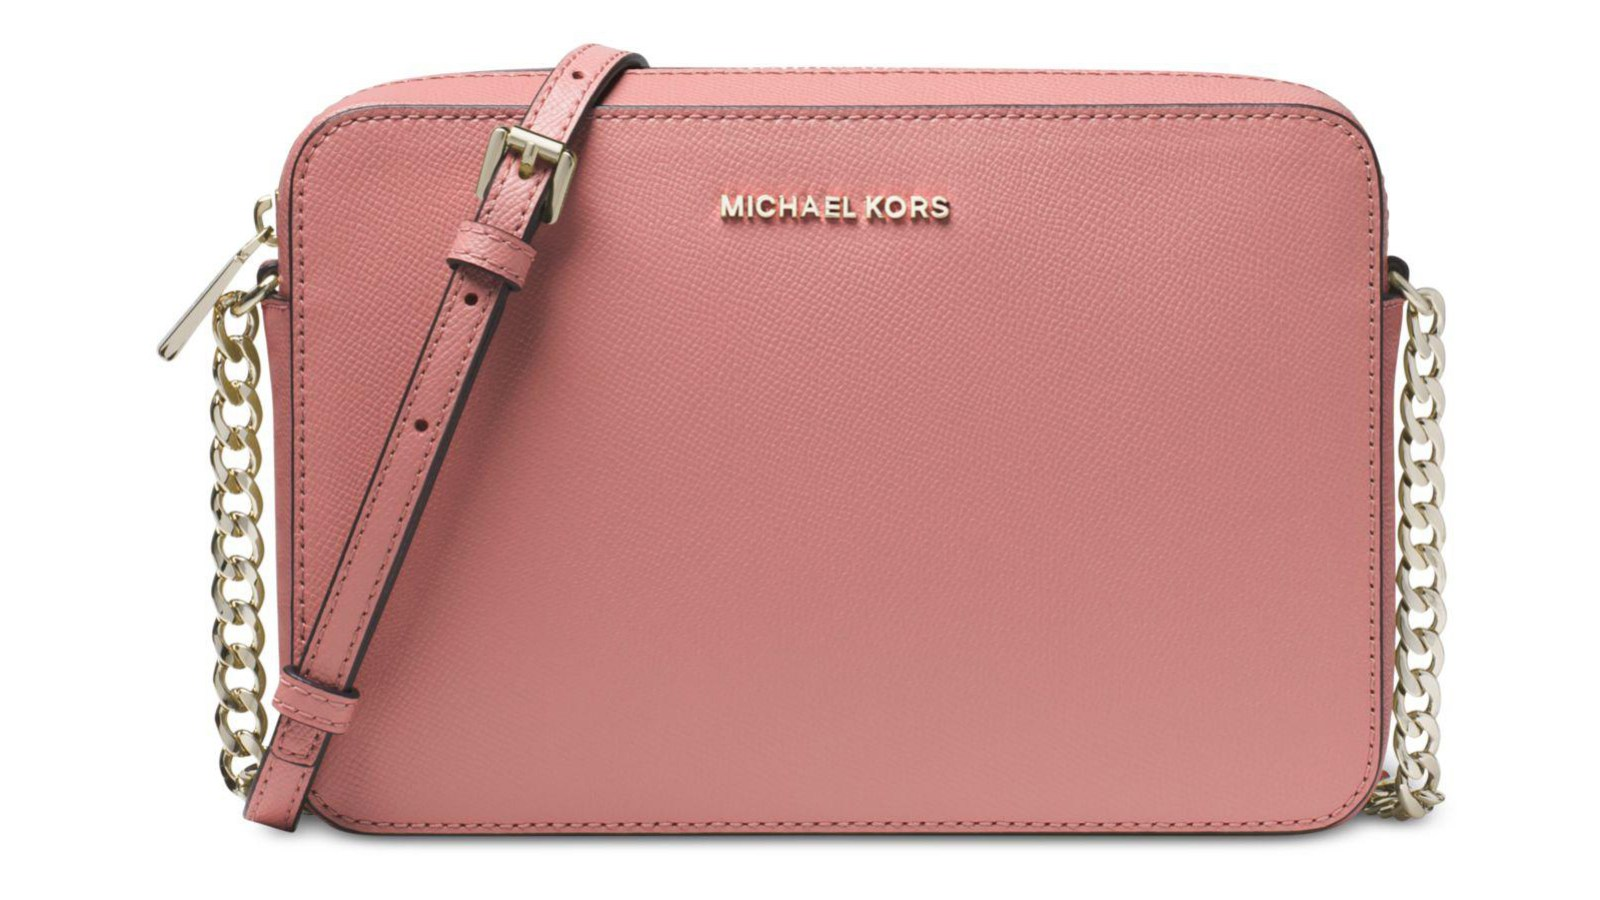 a710d39e072e Hurry! This Top-Rated Michael Kors Bag Is Only  100 Right Now